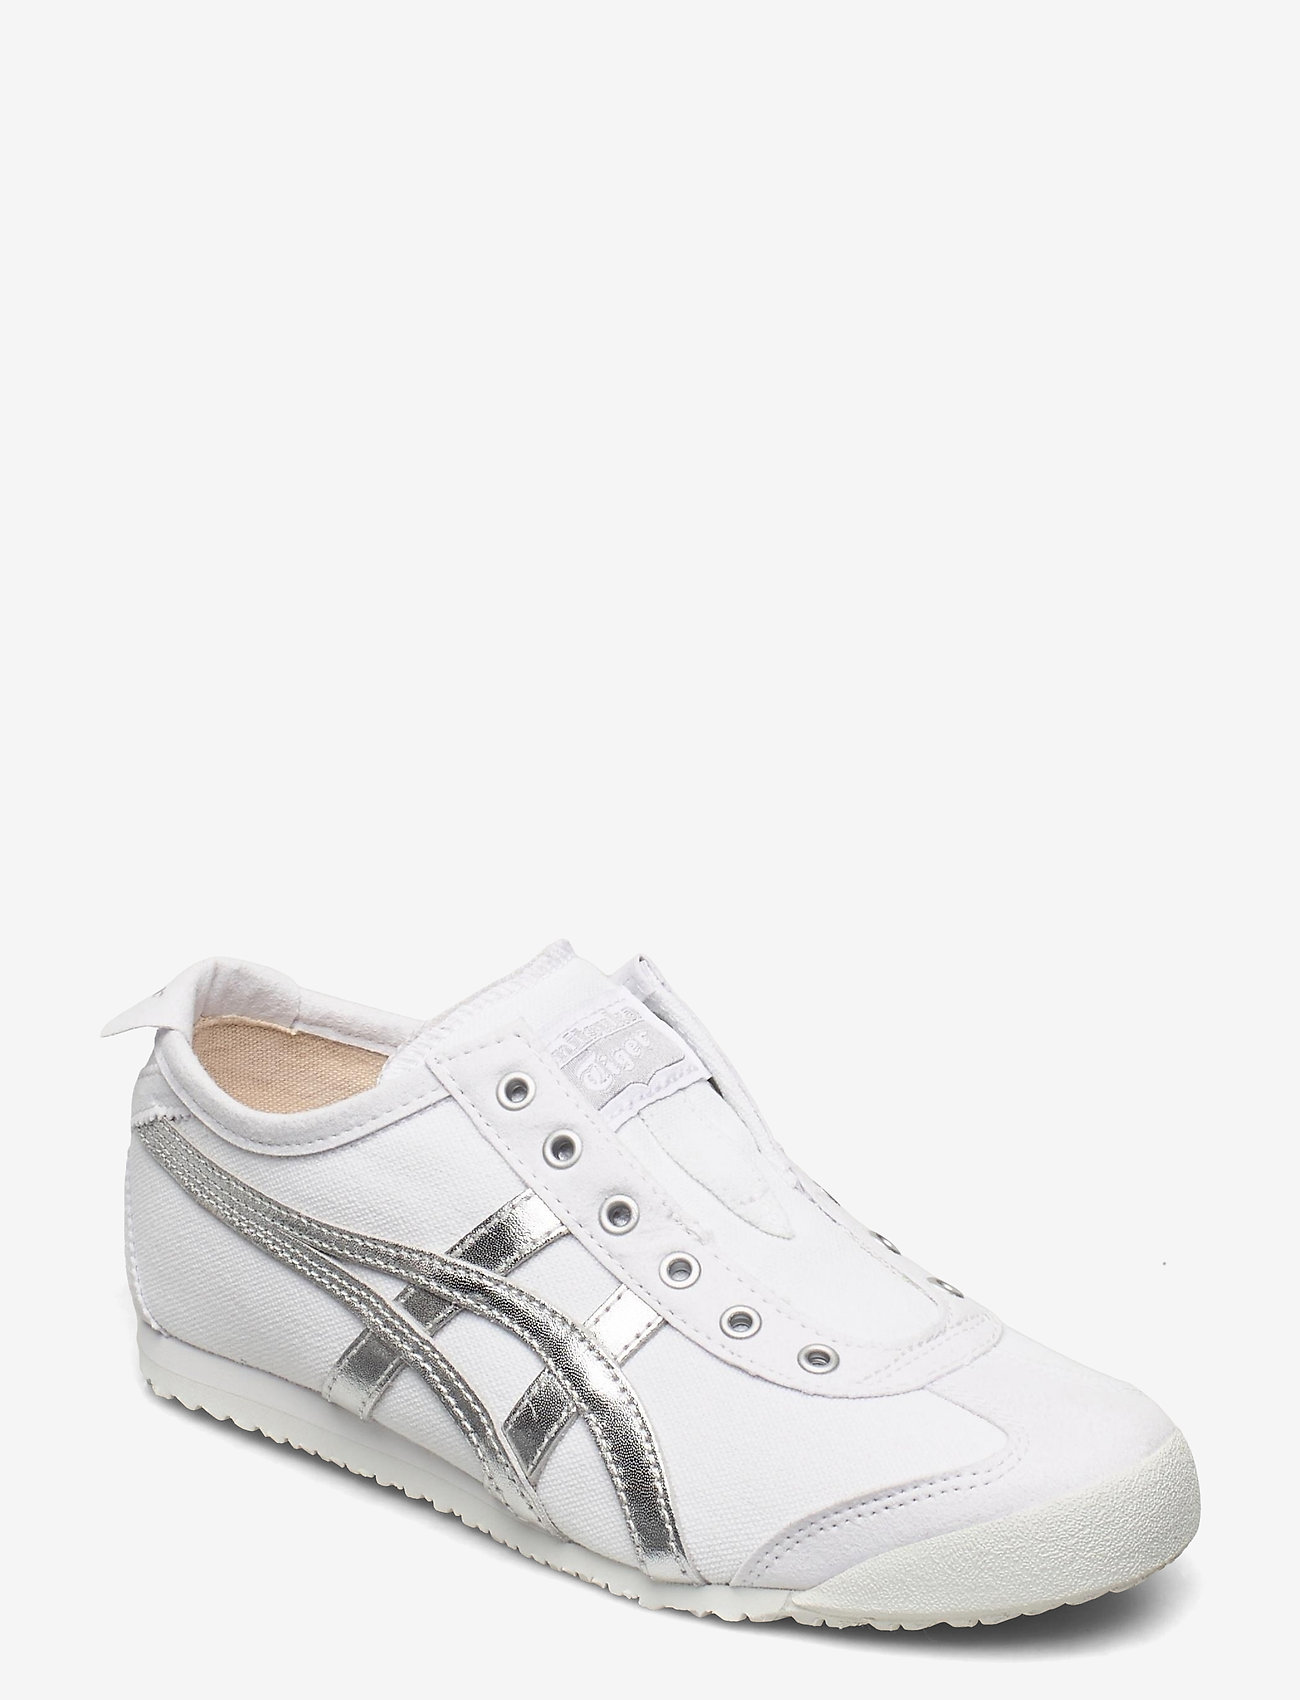 Onitsuka Tiger - MEXICO 66 SLIP-ON - sneakers - white/pure silver - 0